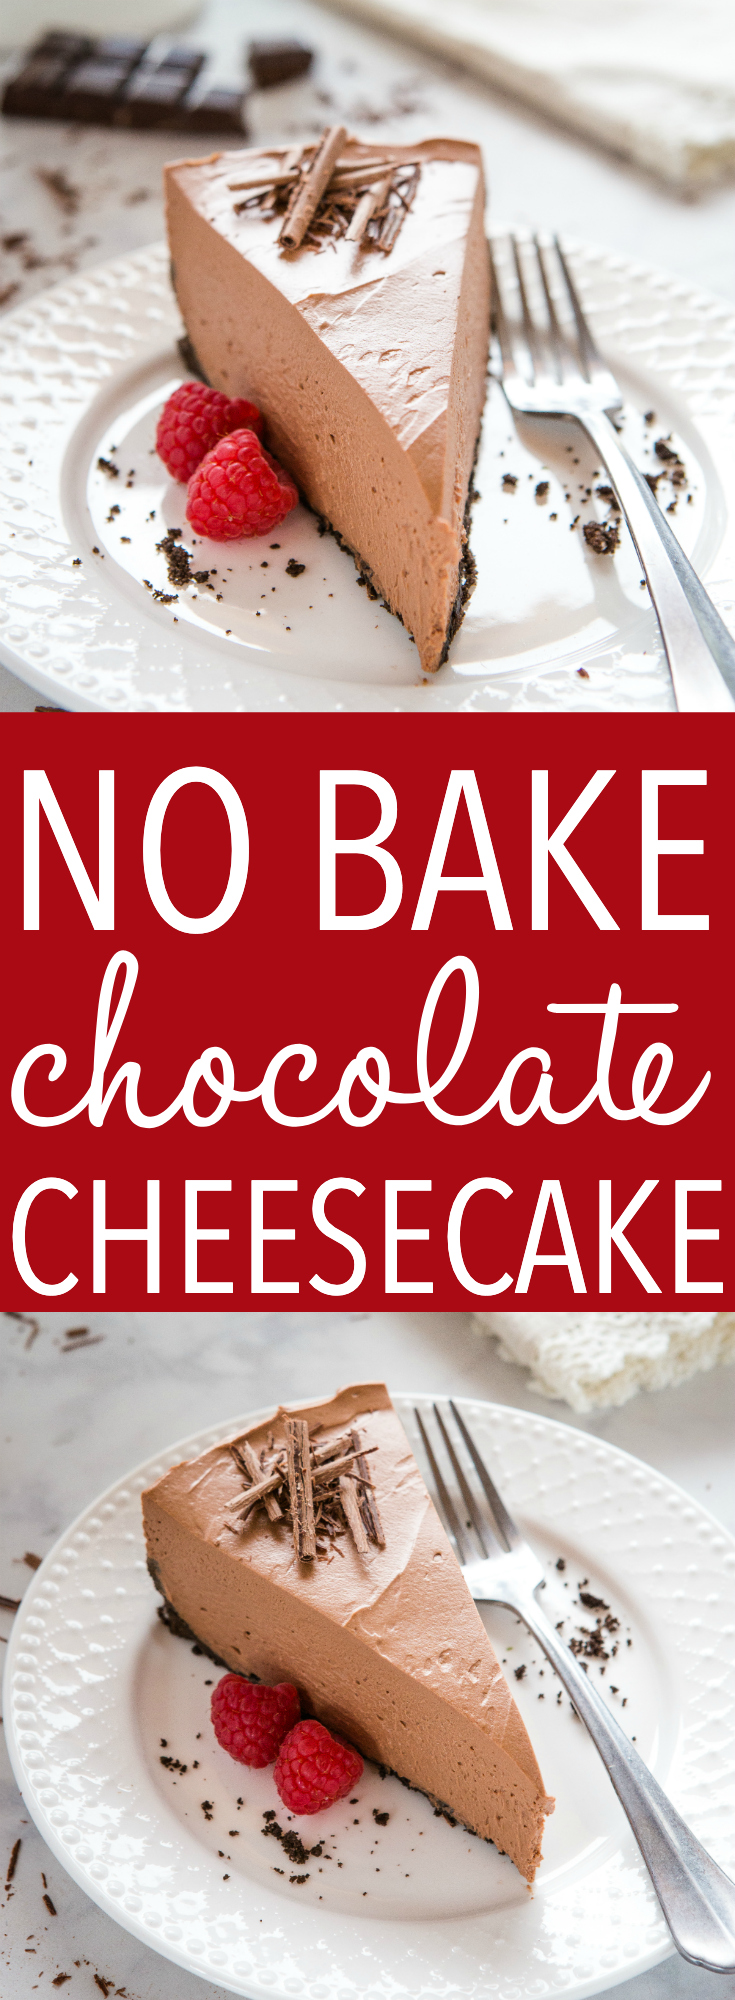 This Best Ever No Bake Chocolate Cheesecake is the perfect easy-to-make cheesecake dessert that's creamy and delicious and packed with real chocolate! Recipe from thebusybaker.ca! #recipe #chocolate #cheesecake #dessert #summer #nobake #creamy #sweet via @busybakerblog